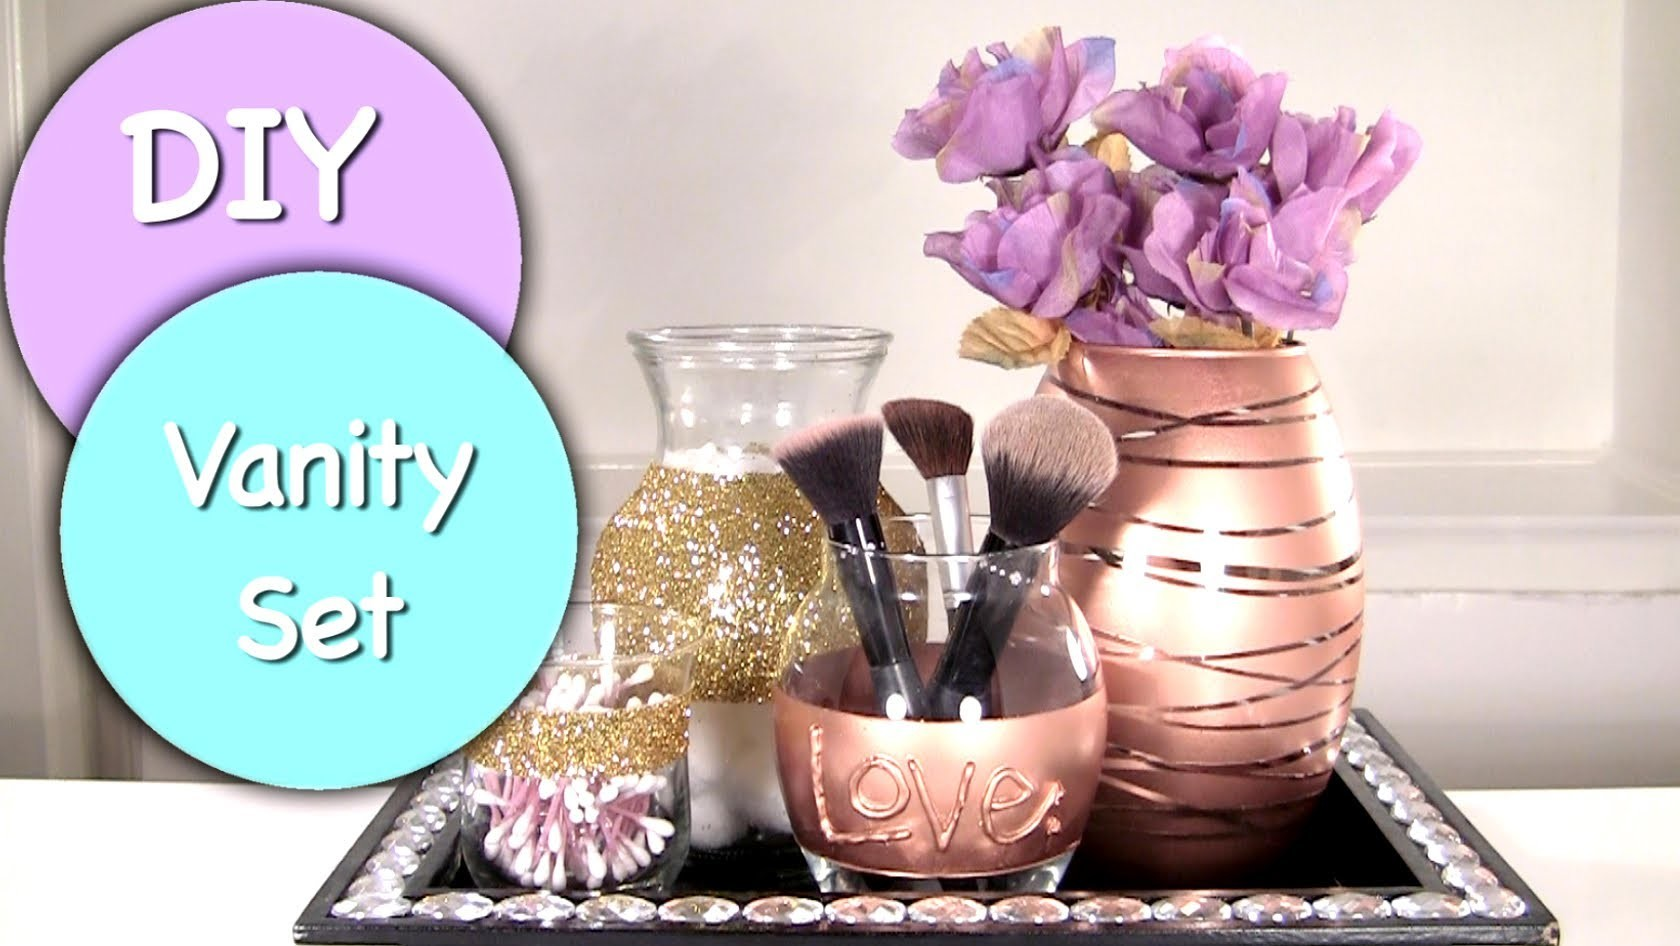 DIY Vanity & Makeup Storage Set! DIY Makeup Brush Holder & 4 Glam Jars